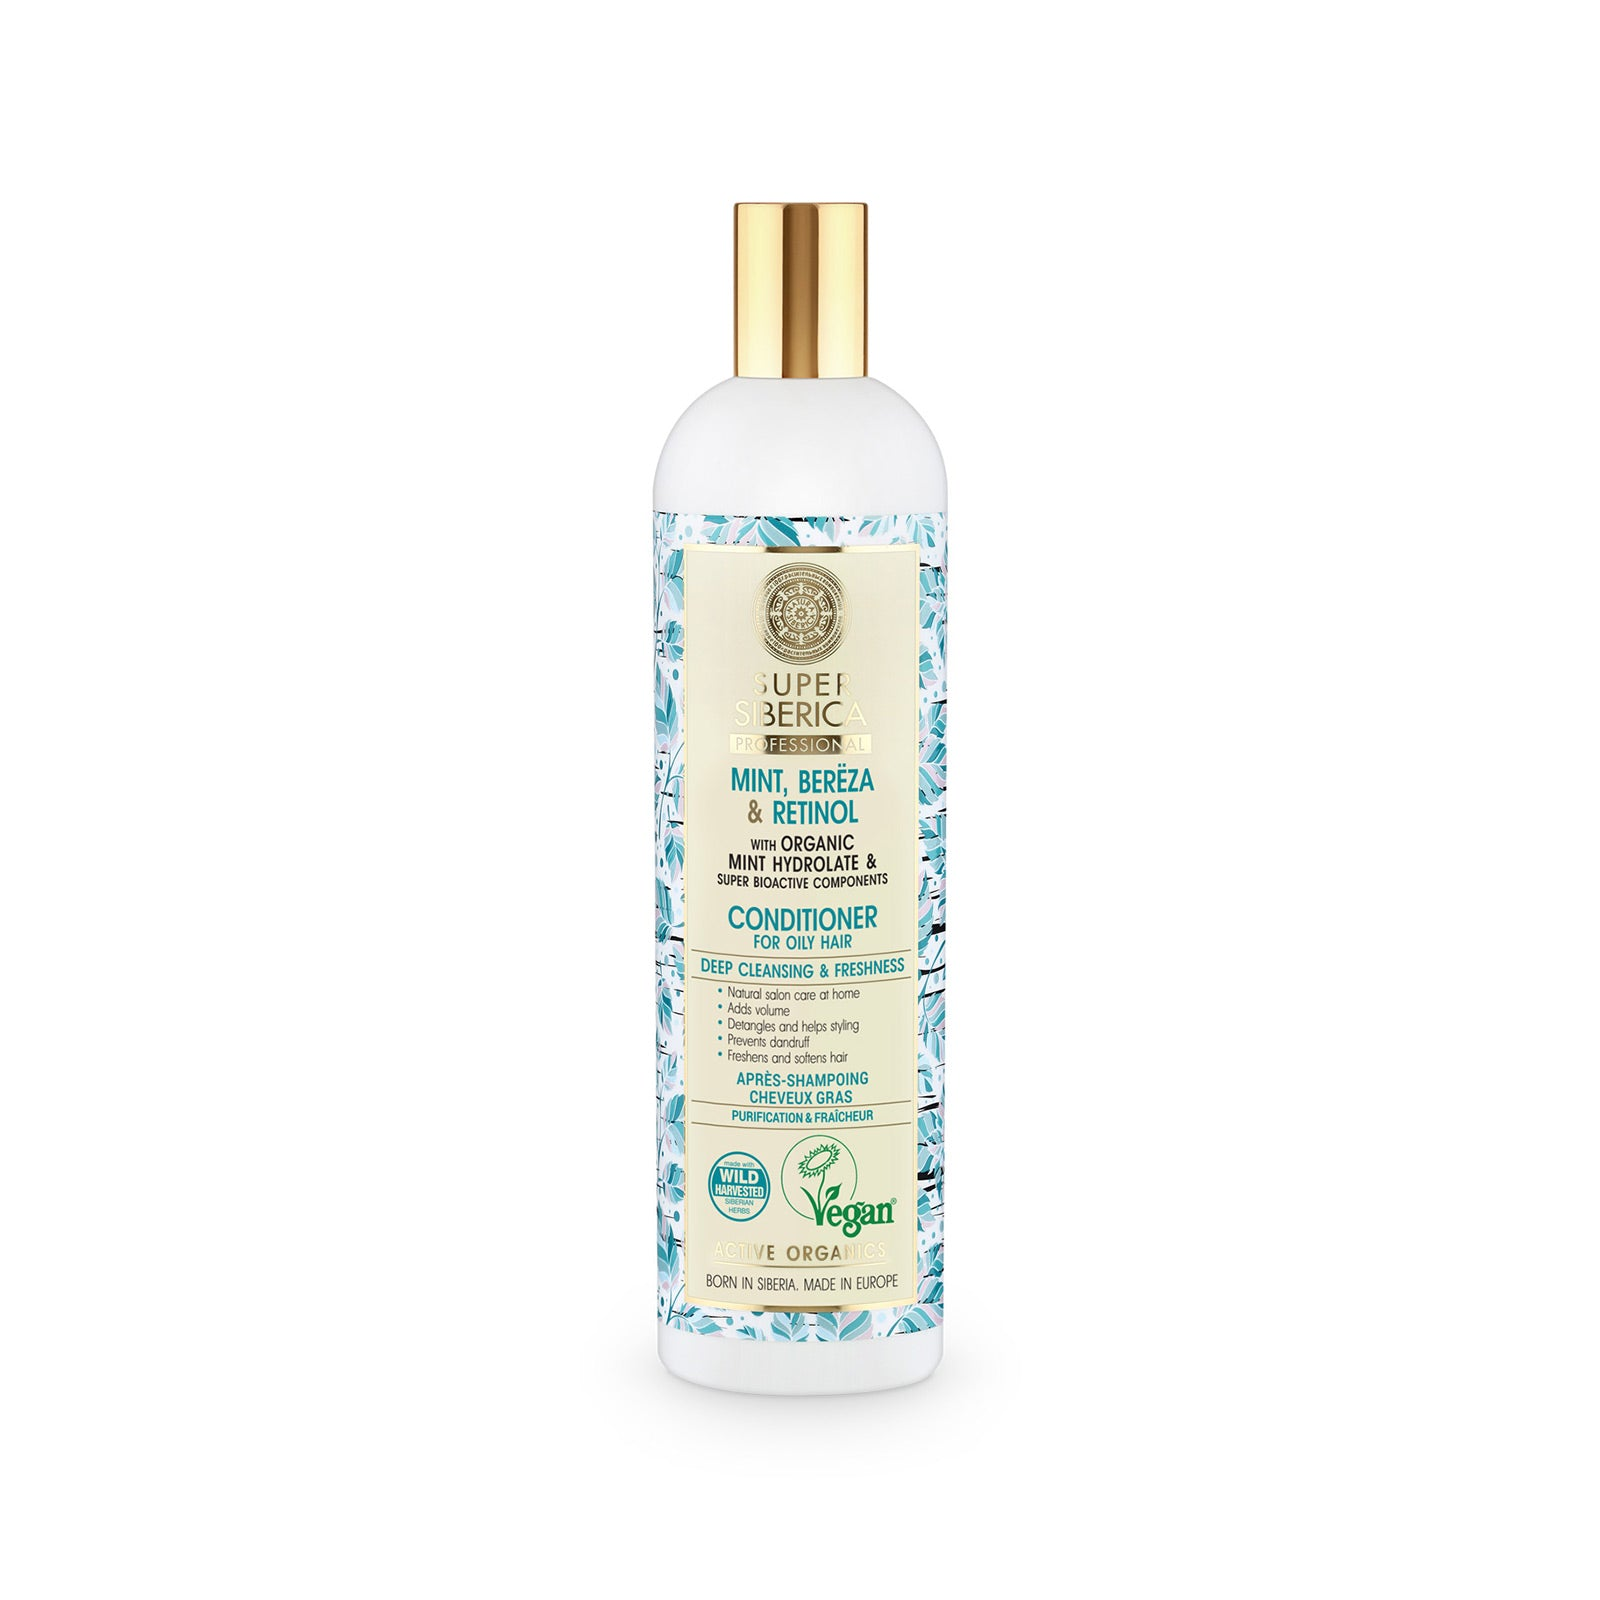 Super Siberica Mint, bereza & retinol. Conditioner for Oily Hair, 400 ml